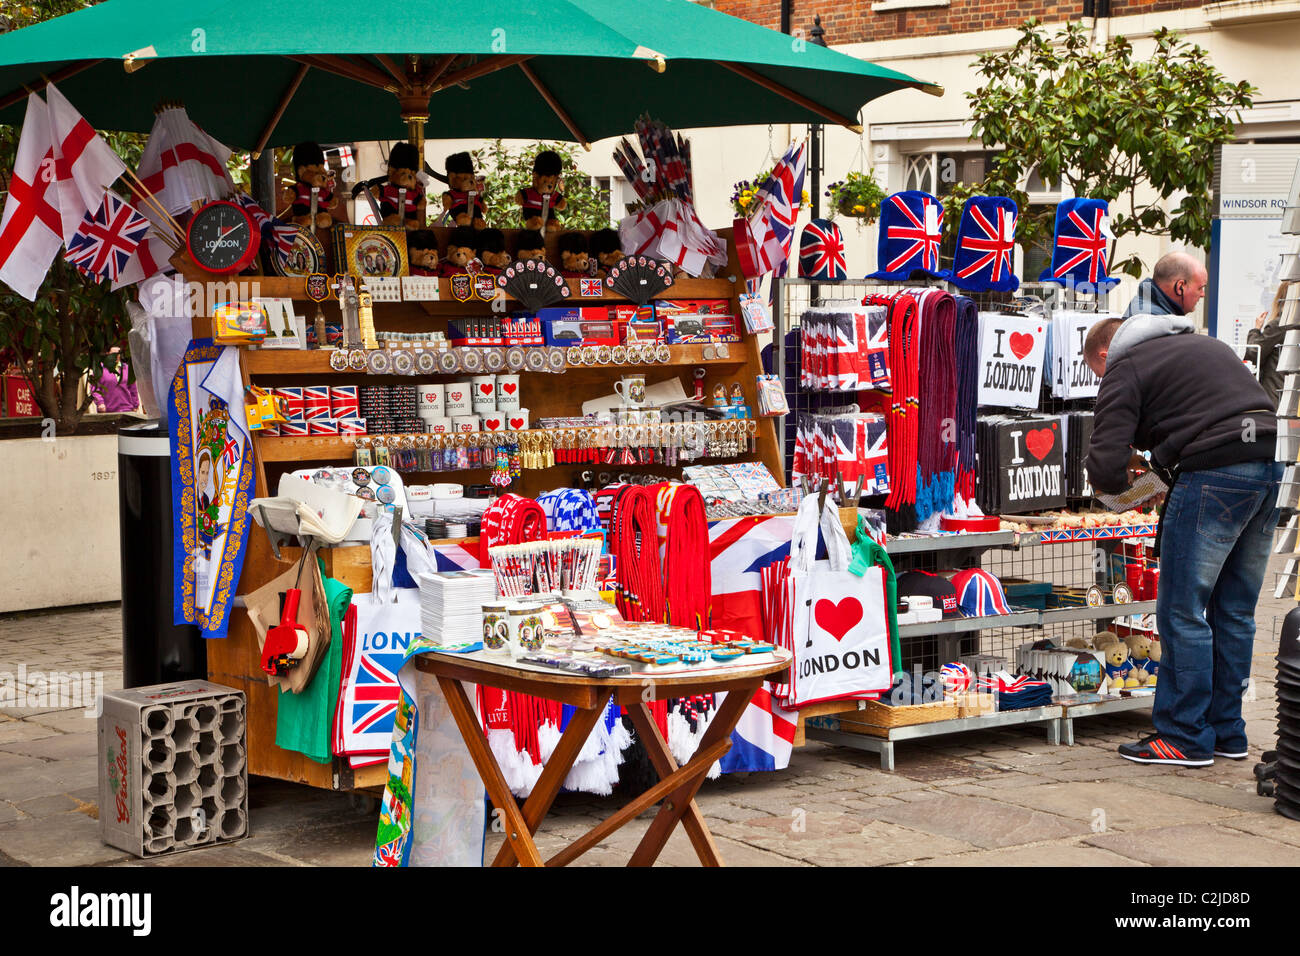 Display of souvenirs,memorabilia and gifts of England and London on a street stall in Windsor, Berkshire, England, - Stock Image